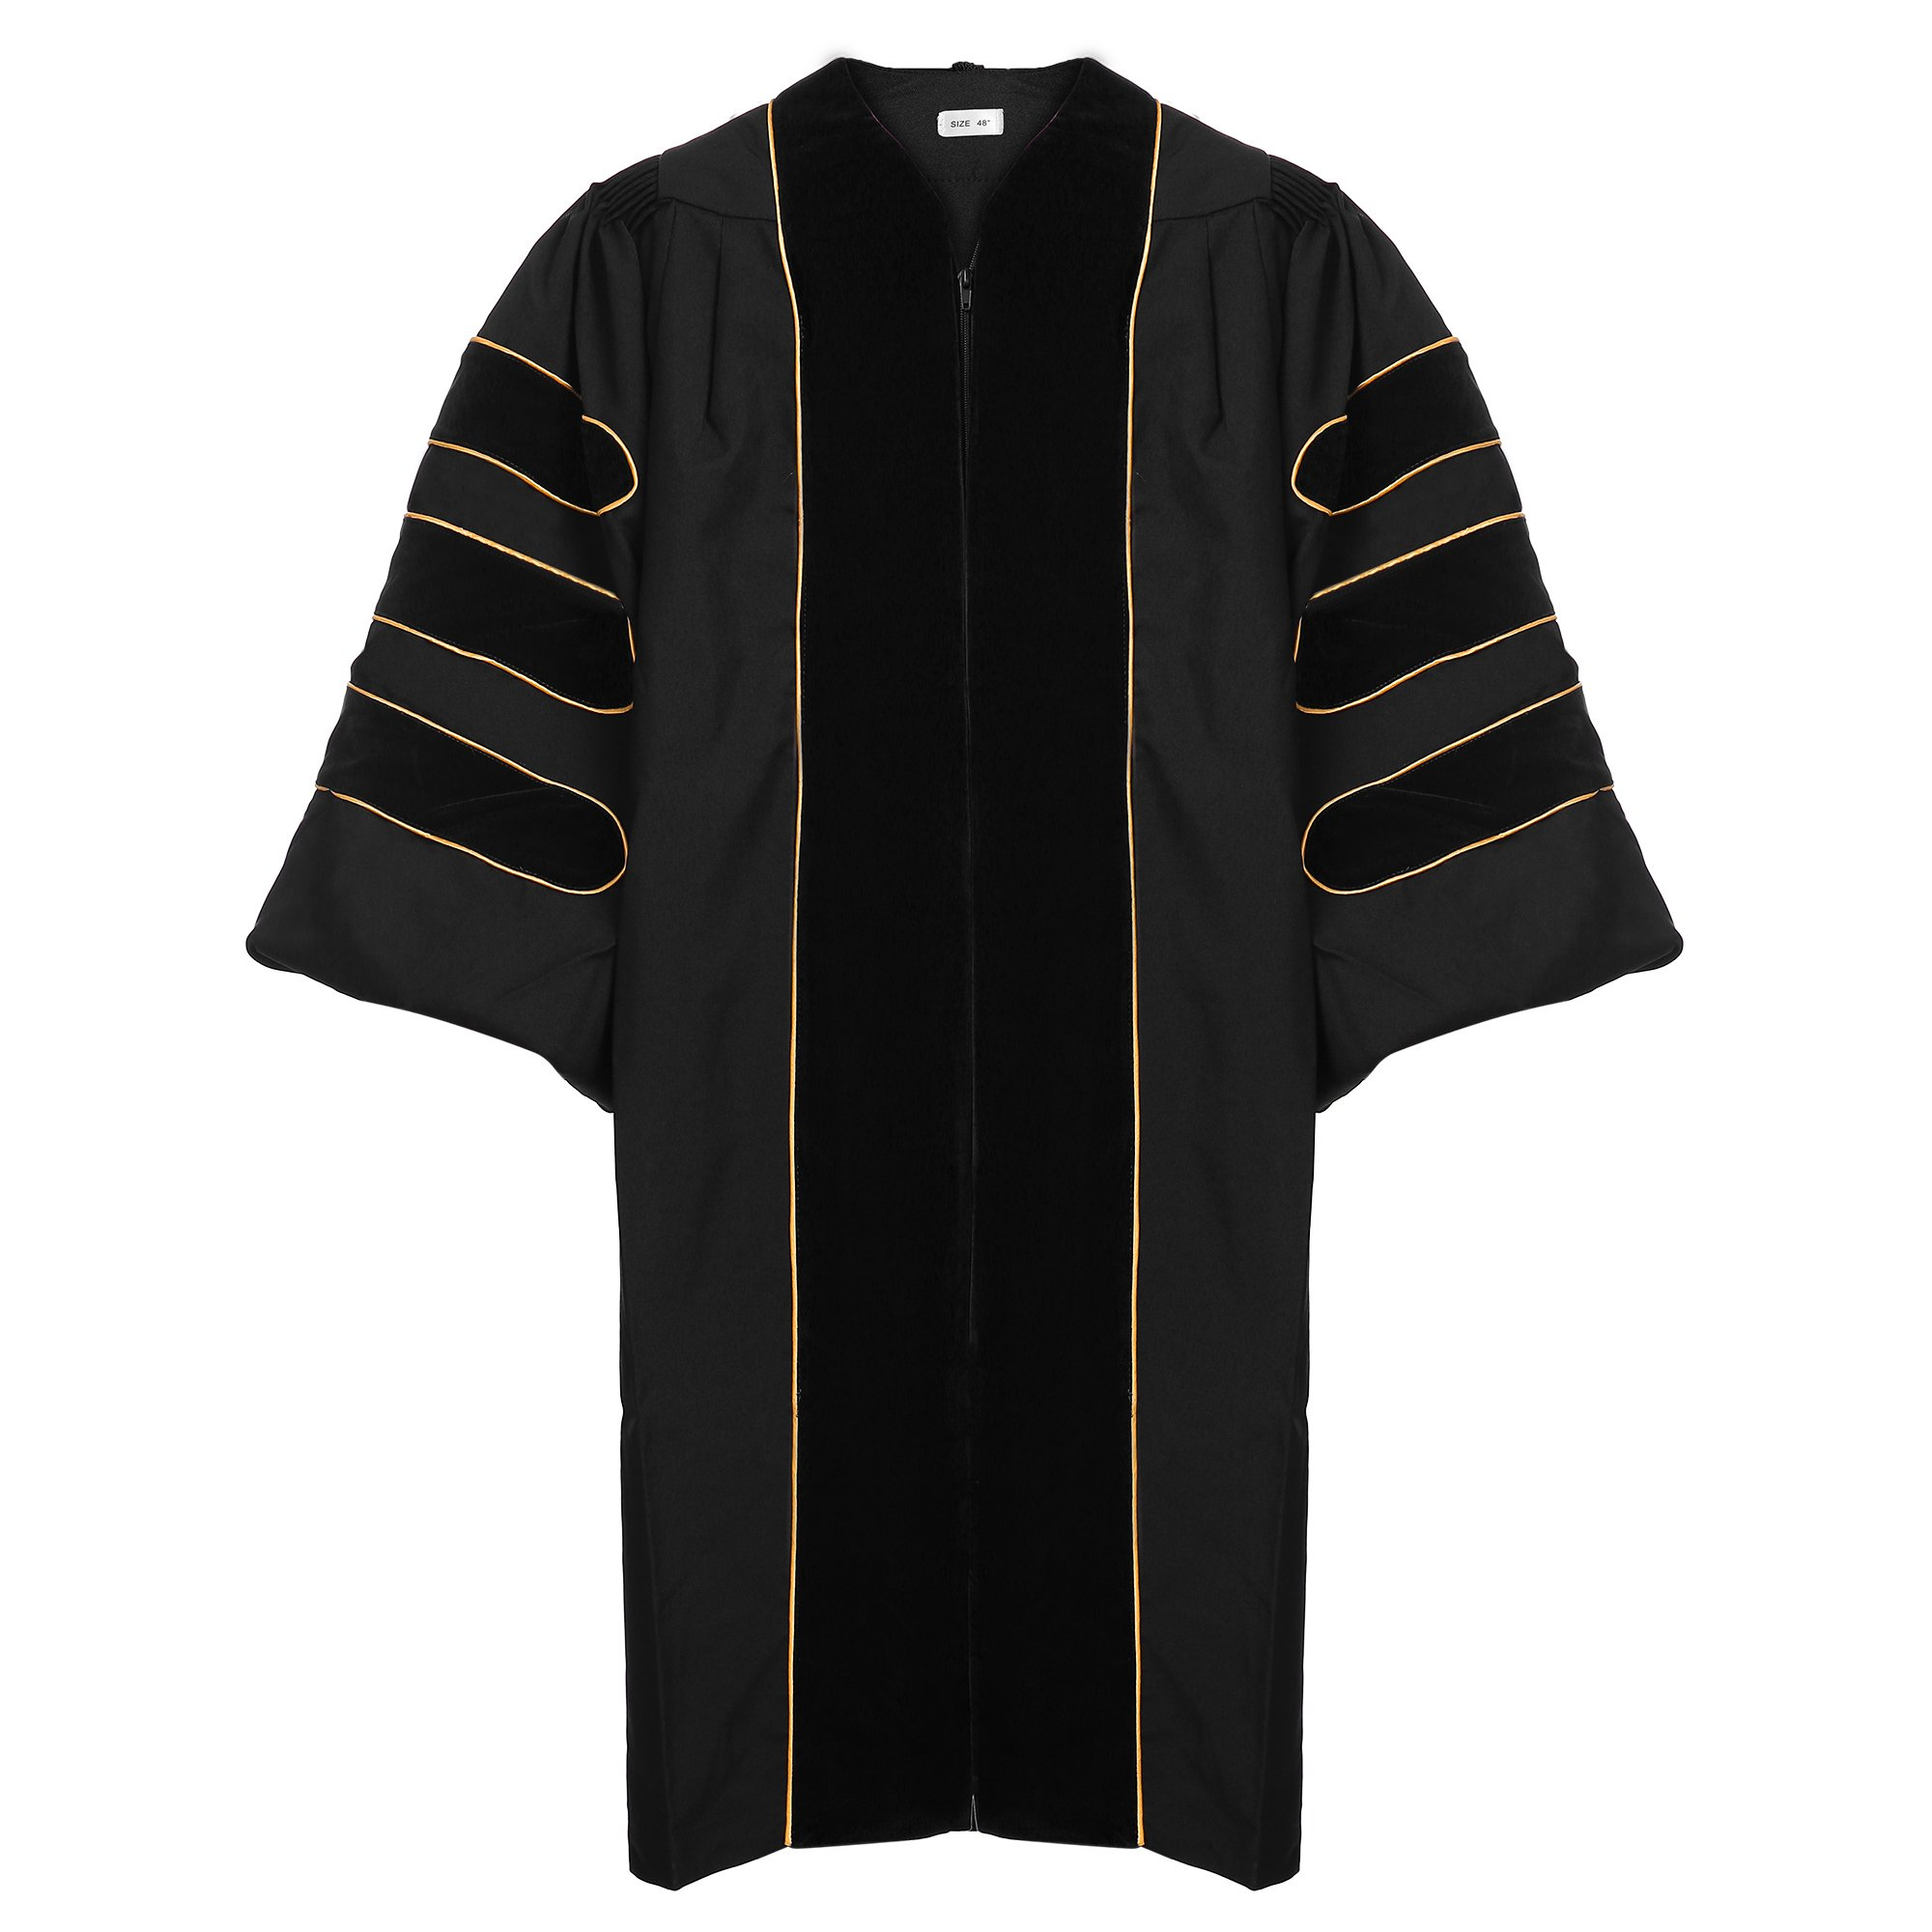 Newrara Unisexd Deluxe Doctoral Graduation Gown-black Trim Gold Piping